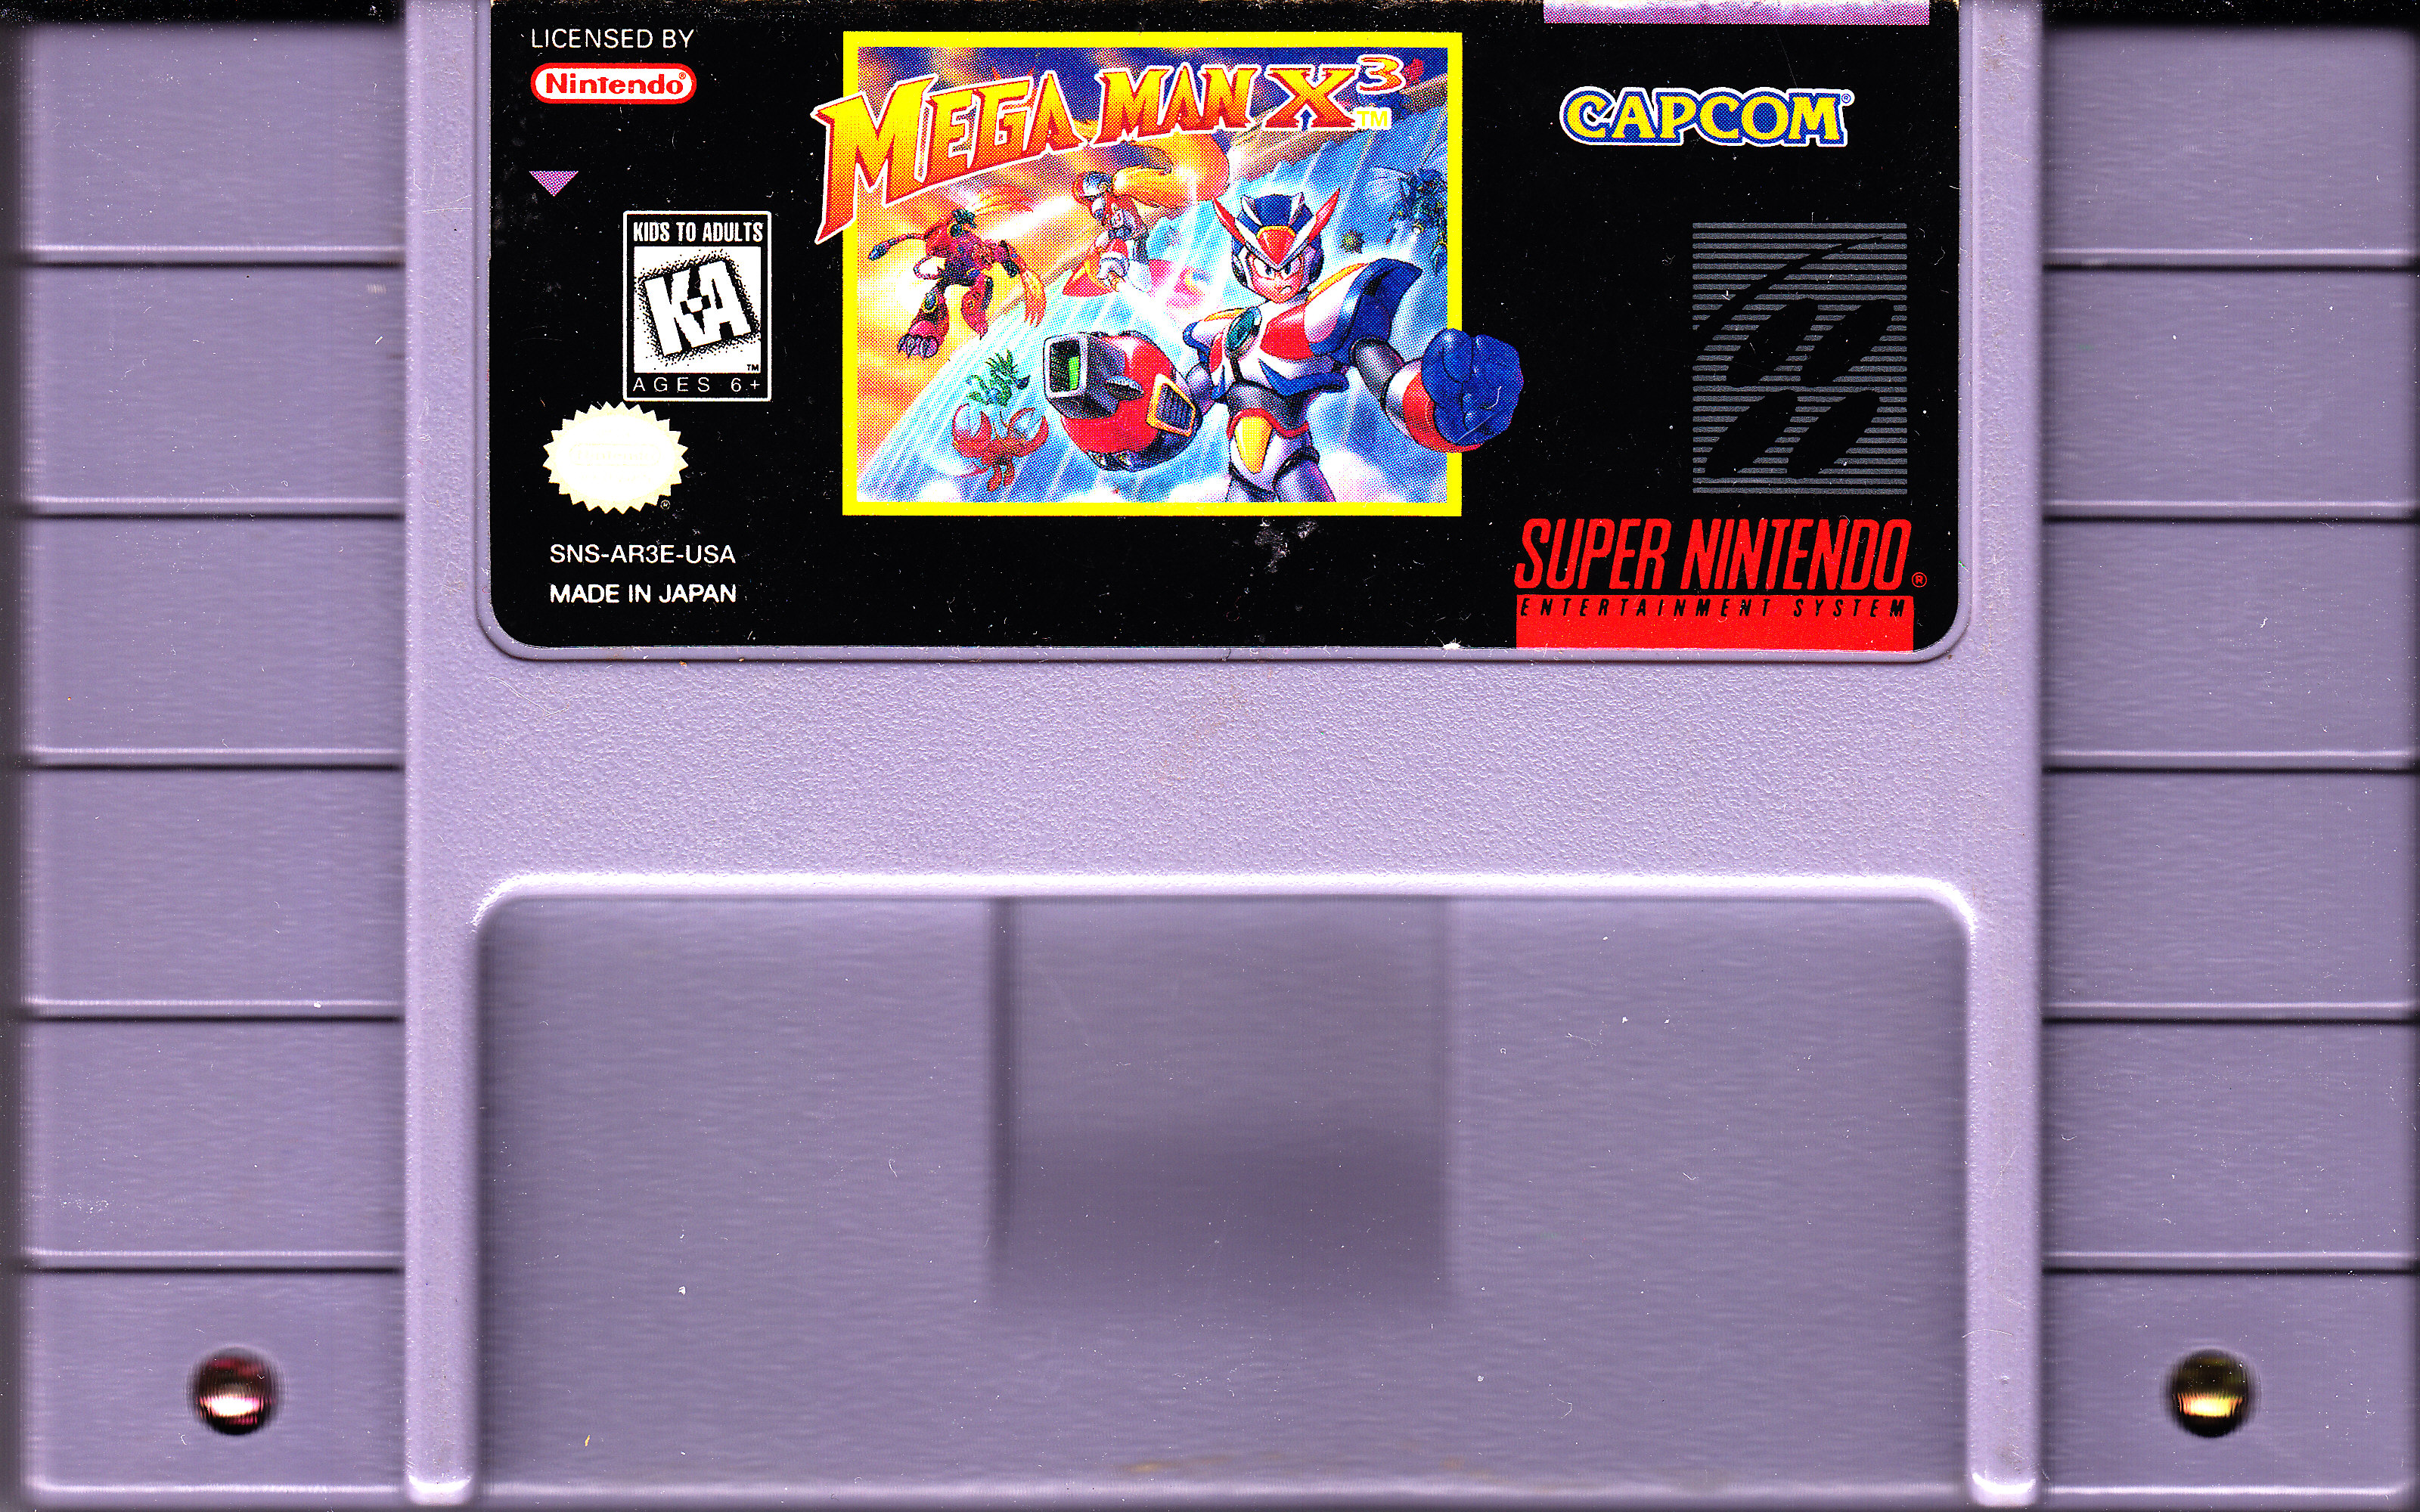 Index Of Video Games Collection Super Nintendo Scans Full Size Mouse Terminator X3 Mega Man Front Cover